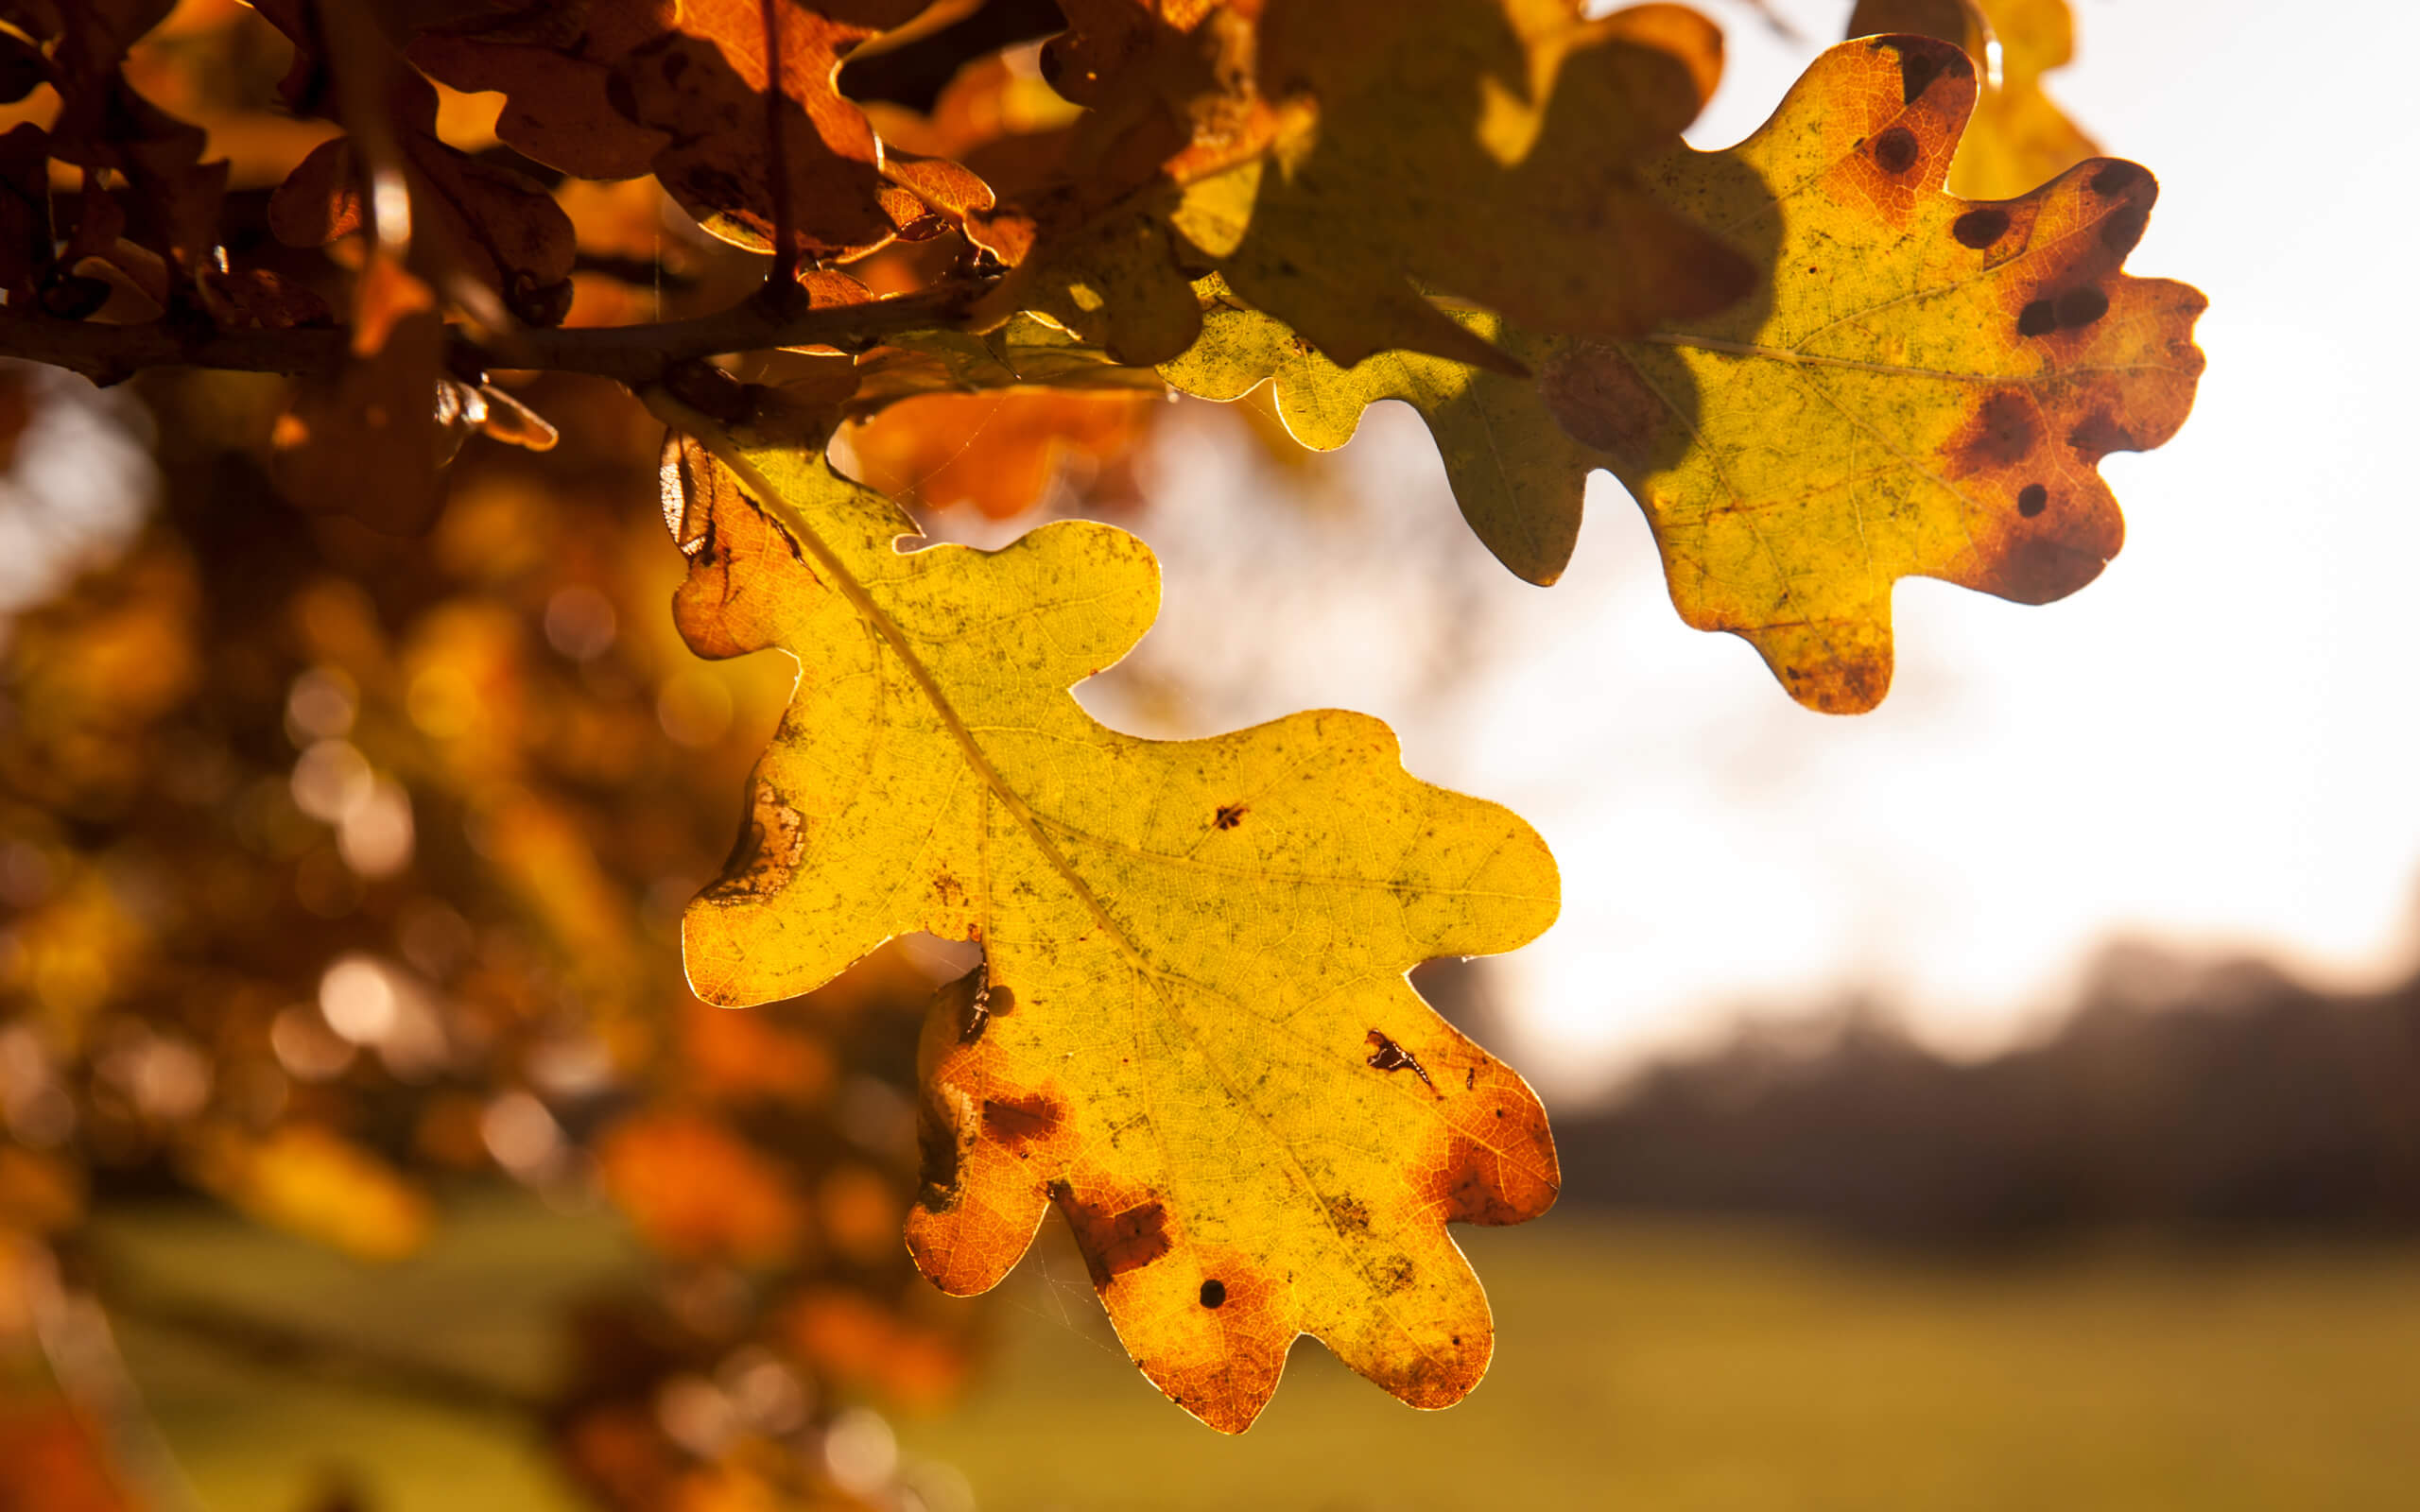 An oak tree leaf in autumn